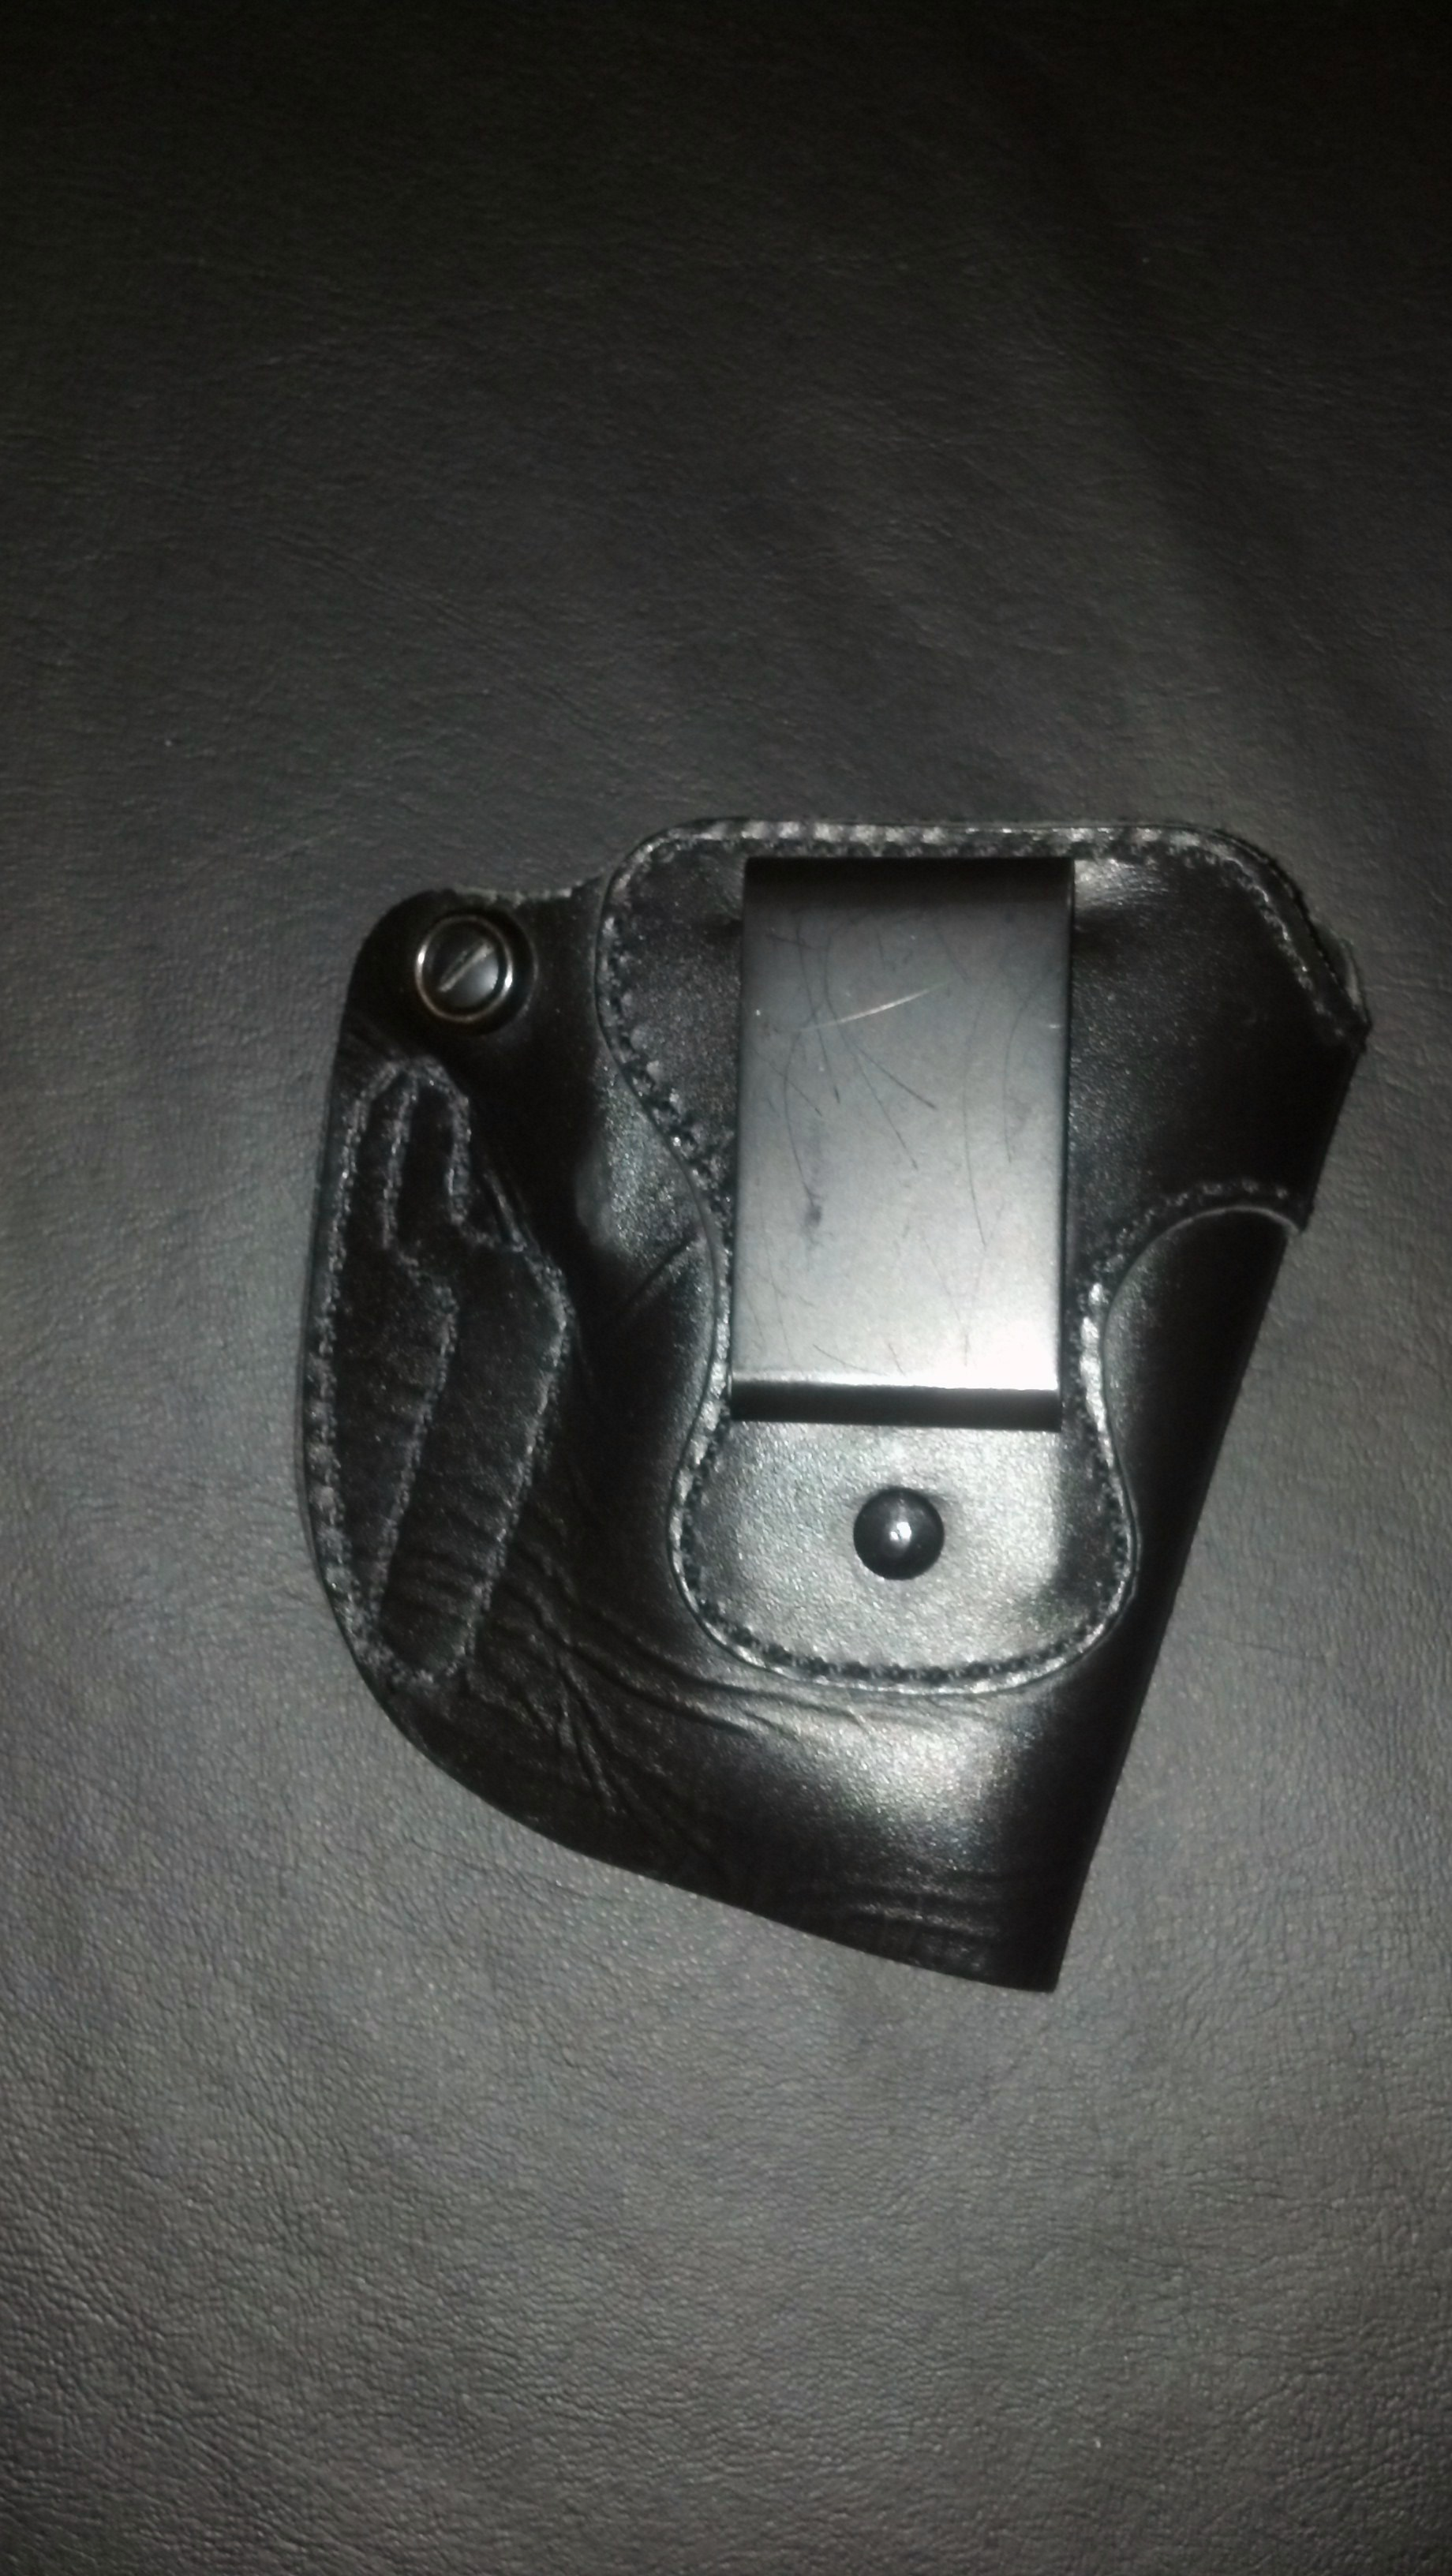 WTS: High Noon Bare Asset IWB leather holster-img_20140429_104323_261.jpg